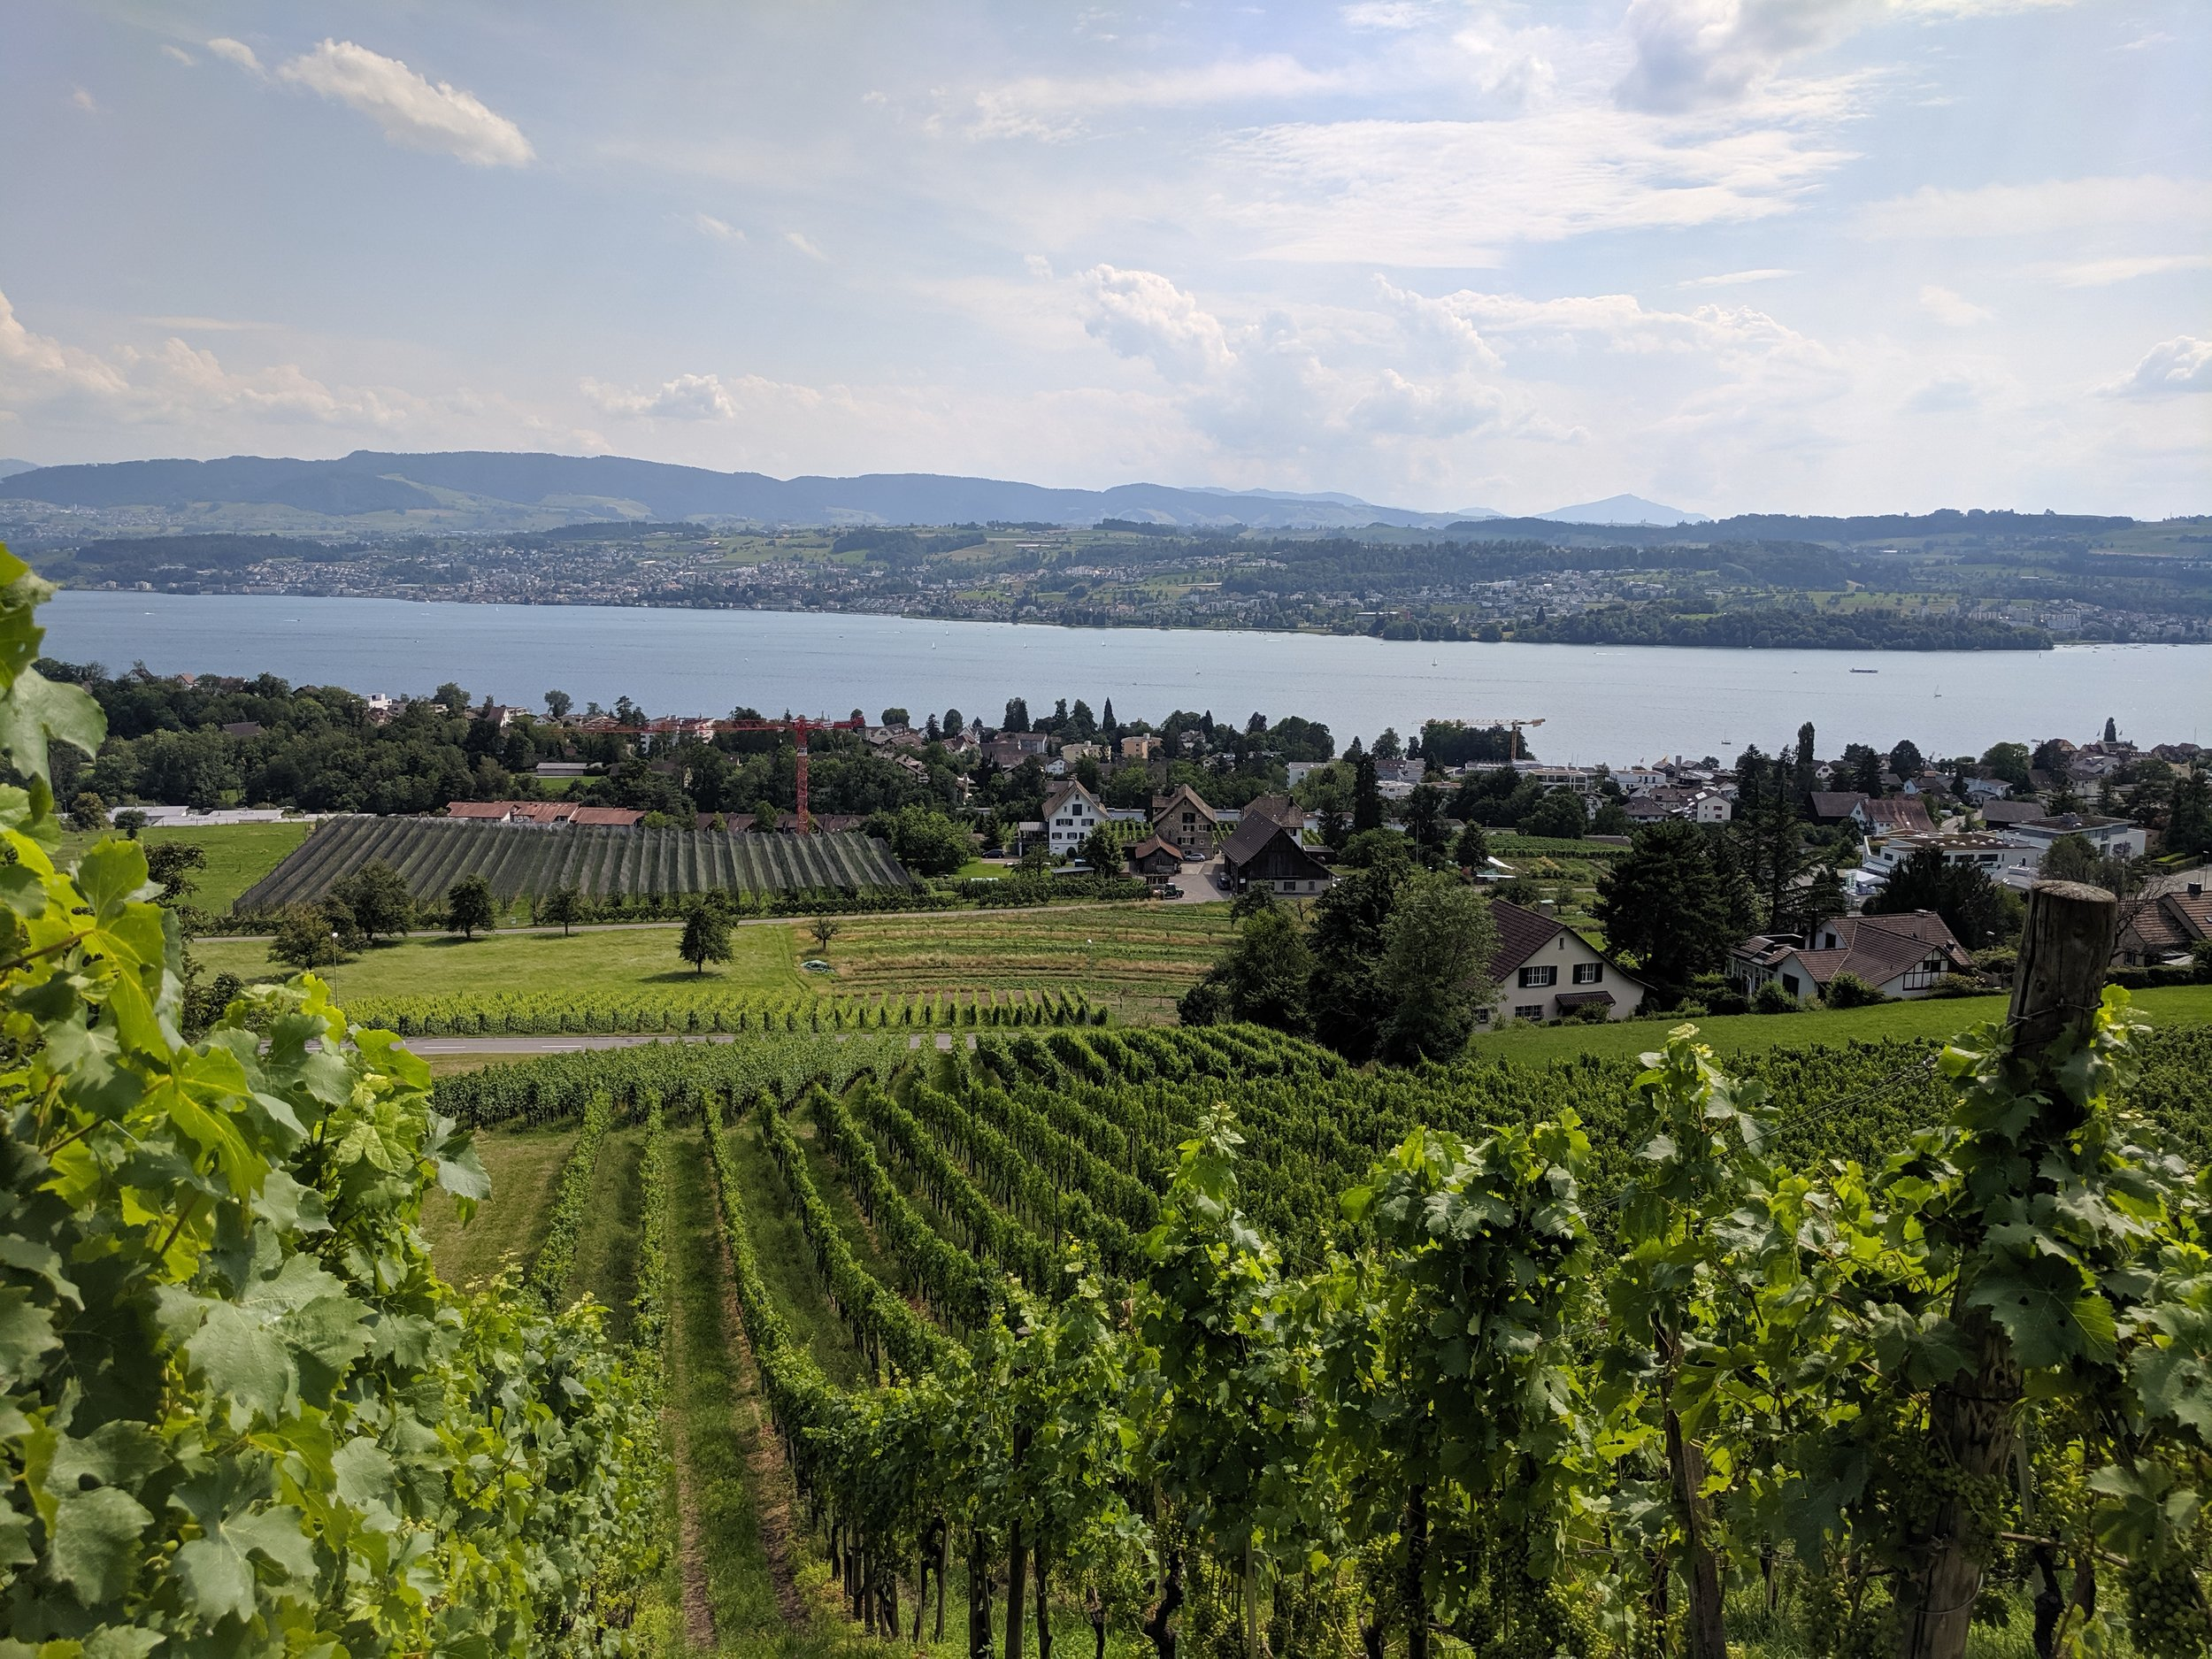 Patterned beauty in the details of hillside vineyards flowing towards Lake Zurich from its south facing, northern slopes.